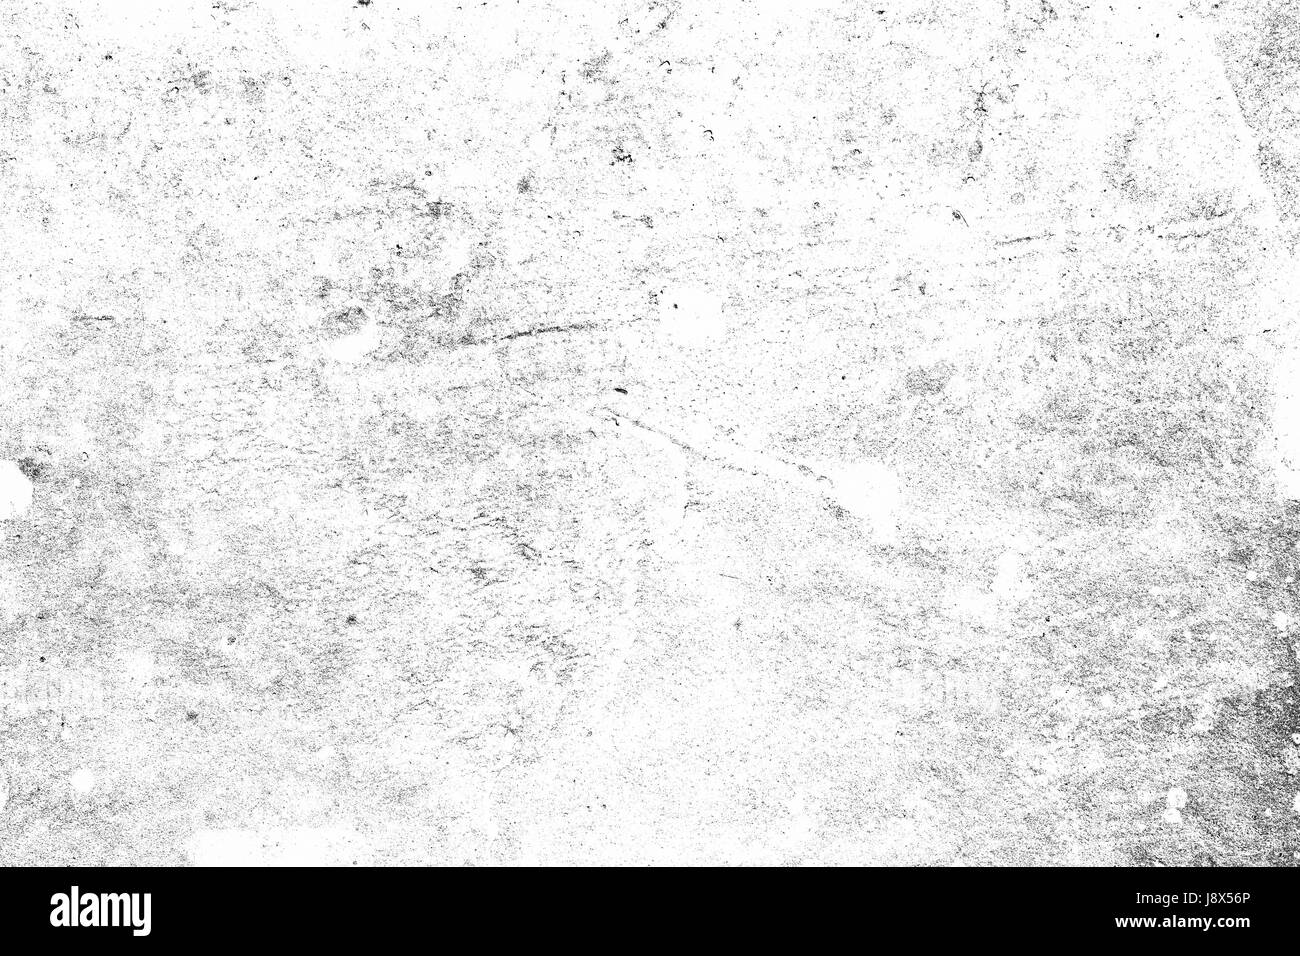 grunge black and white urban texture template place over any object